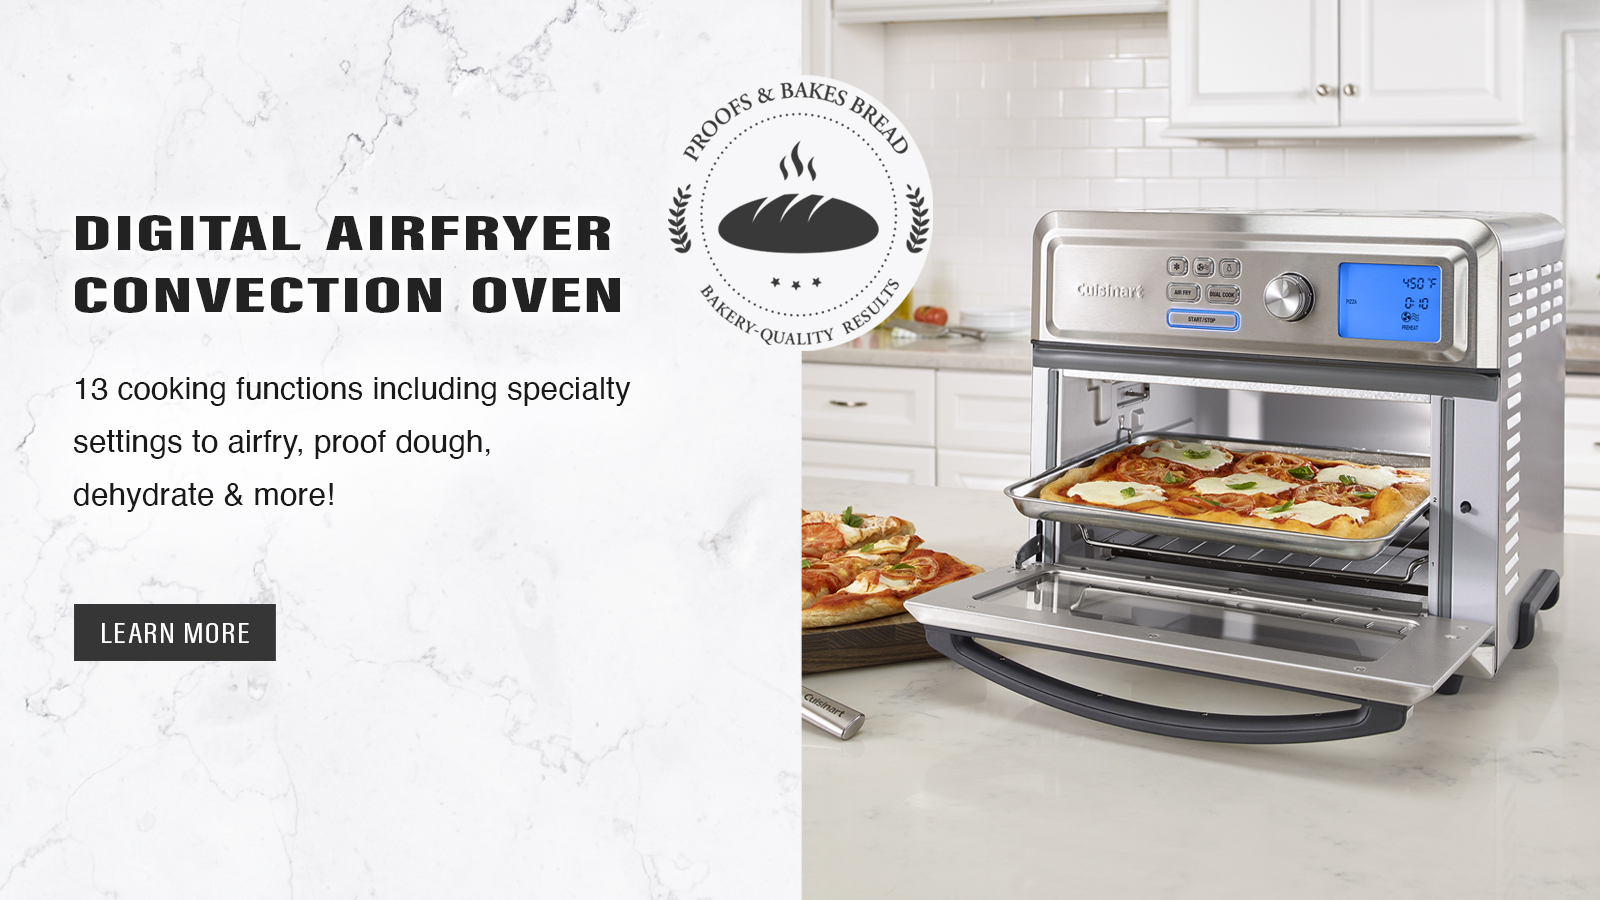 Digital AirFryer Convection Oven